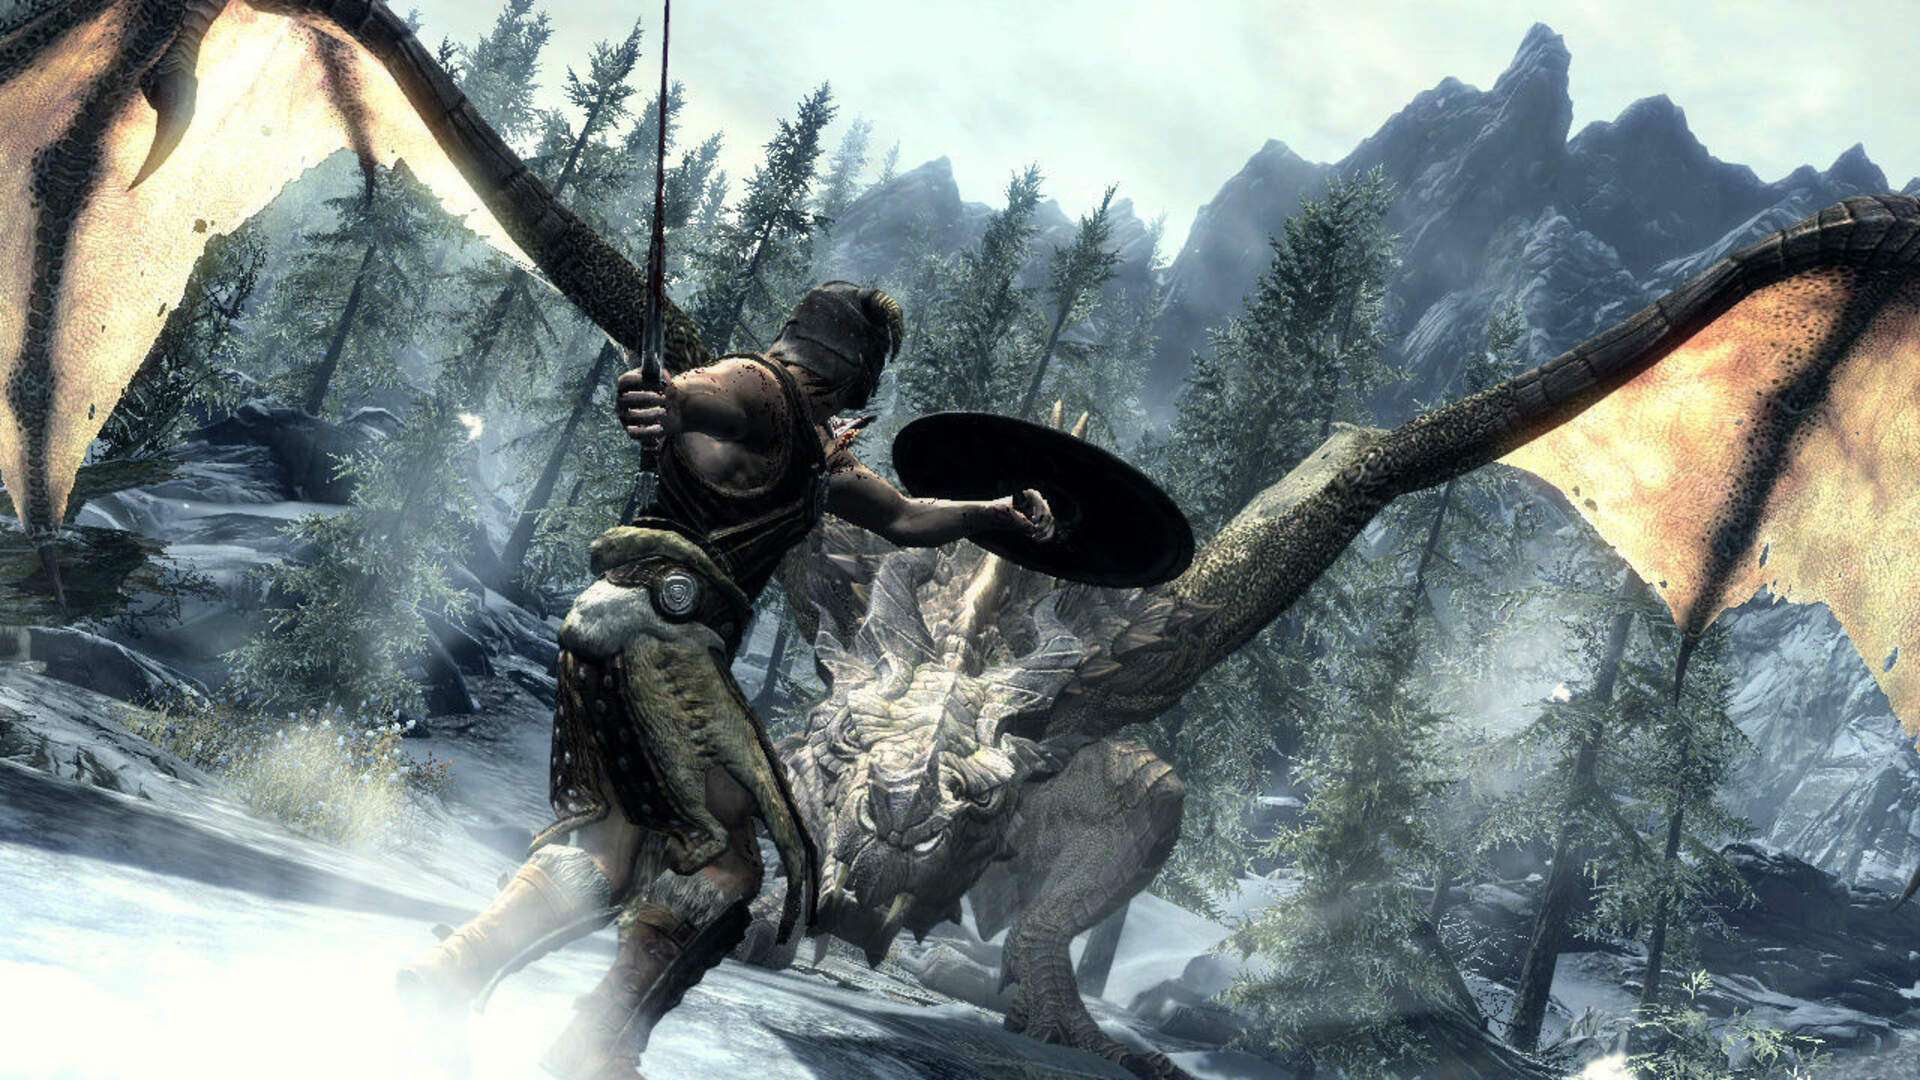 Bethesda Game Studios Still Has Two Games to Make Before Working on Elder Scrolls 6